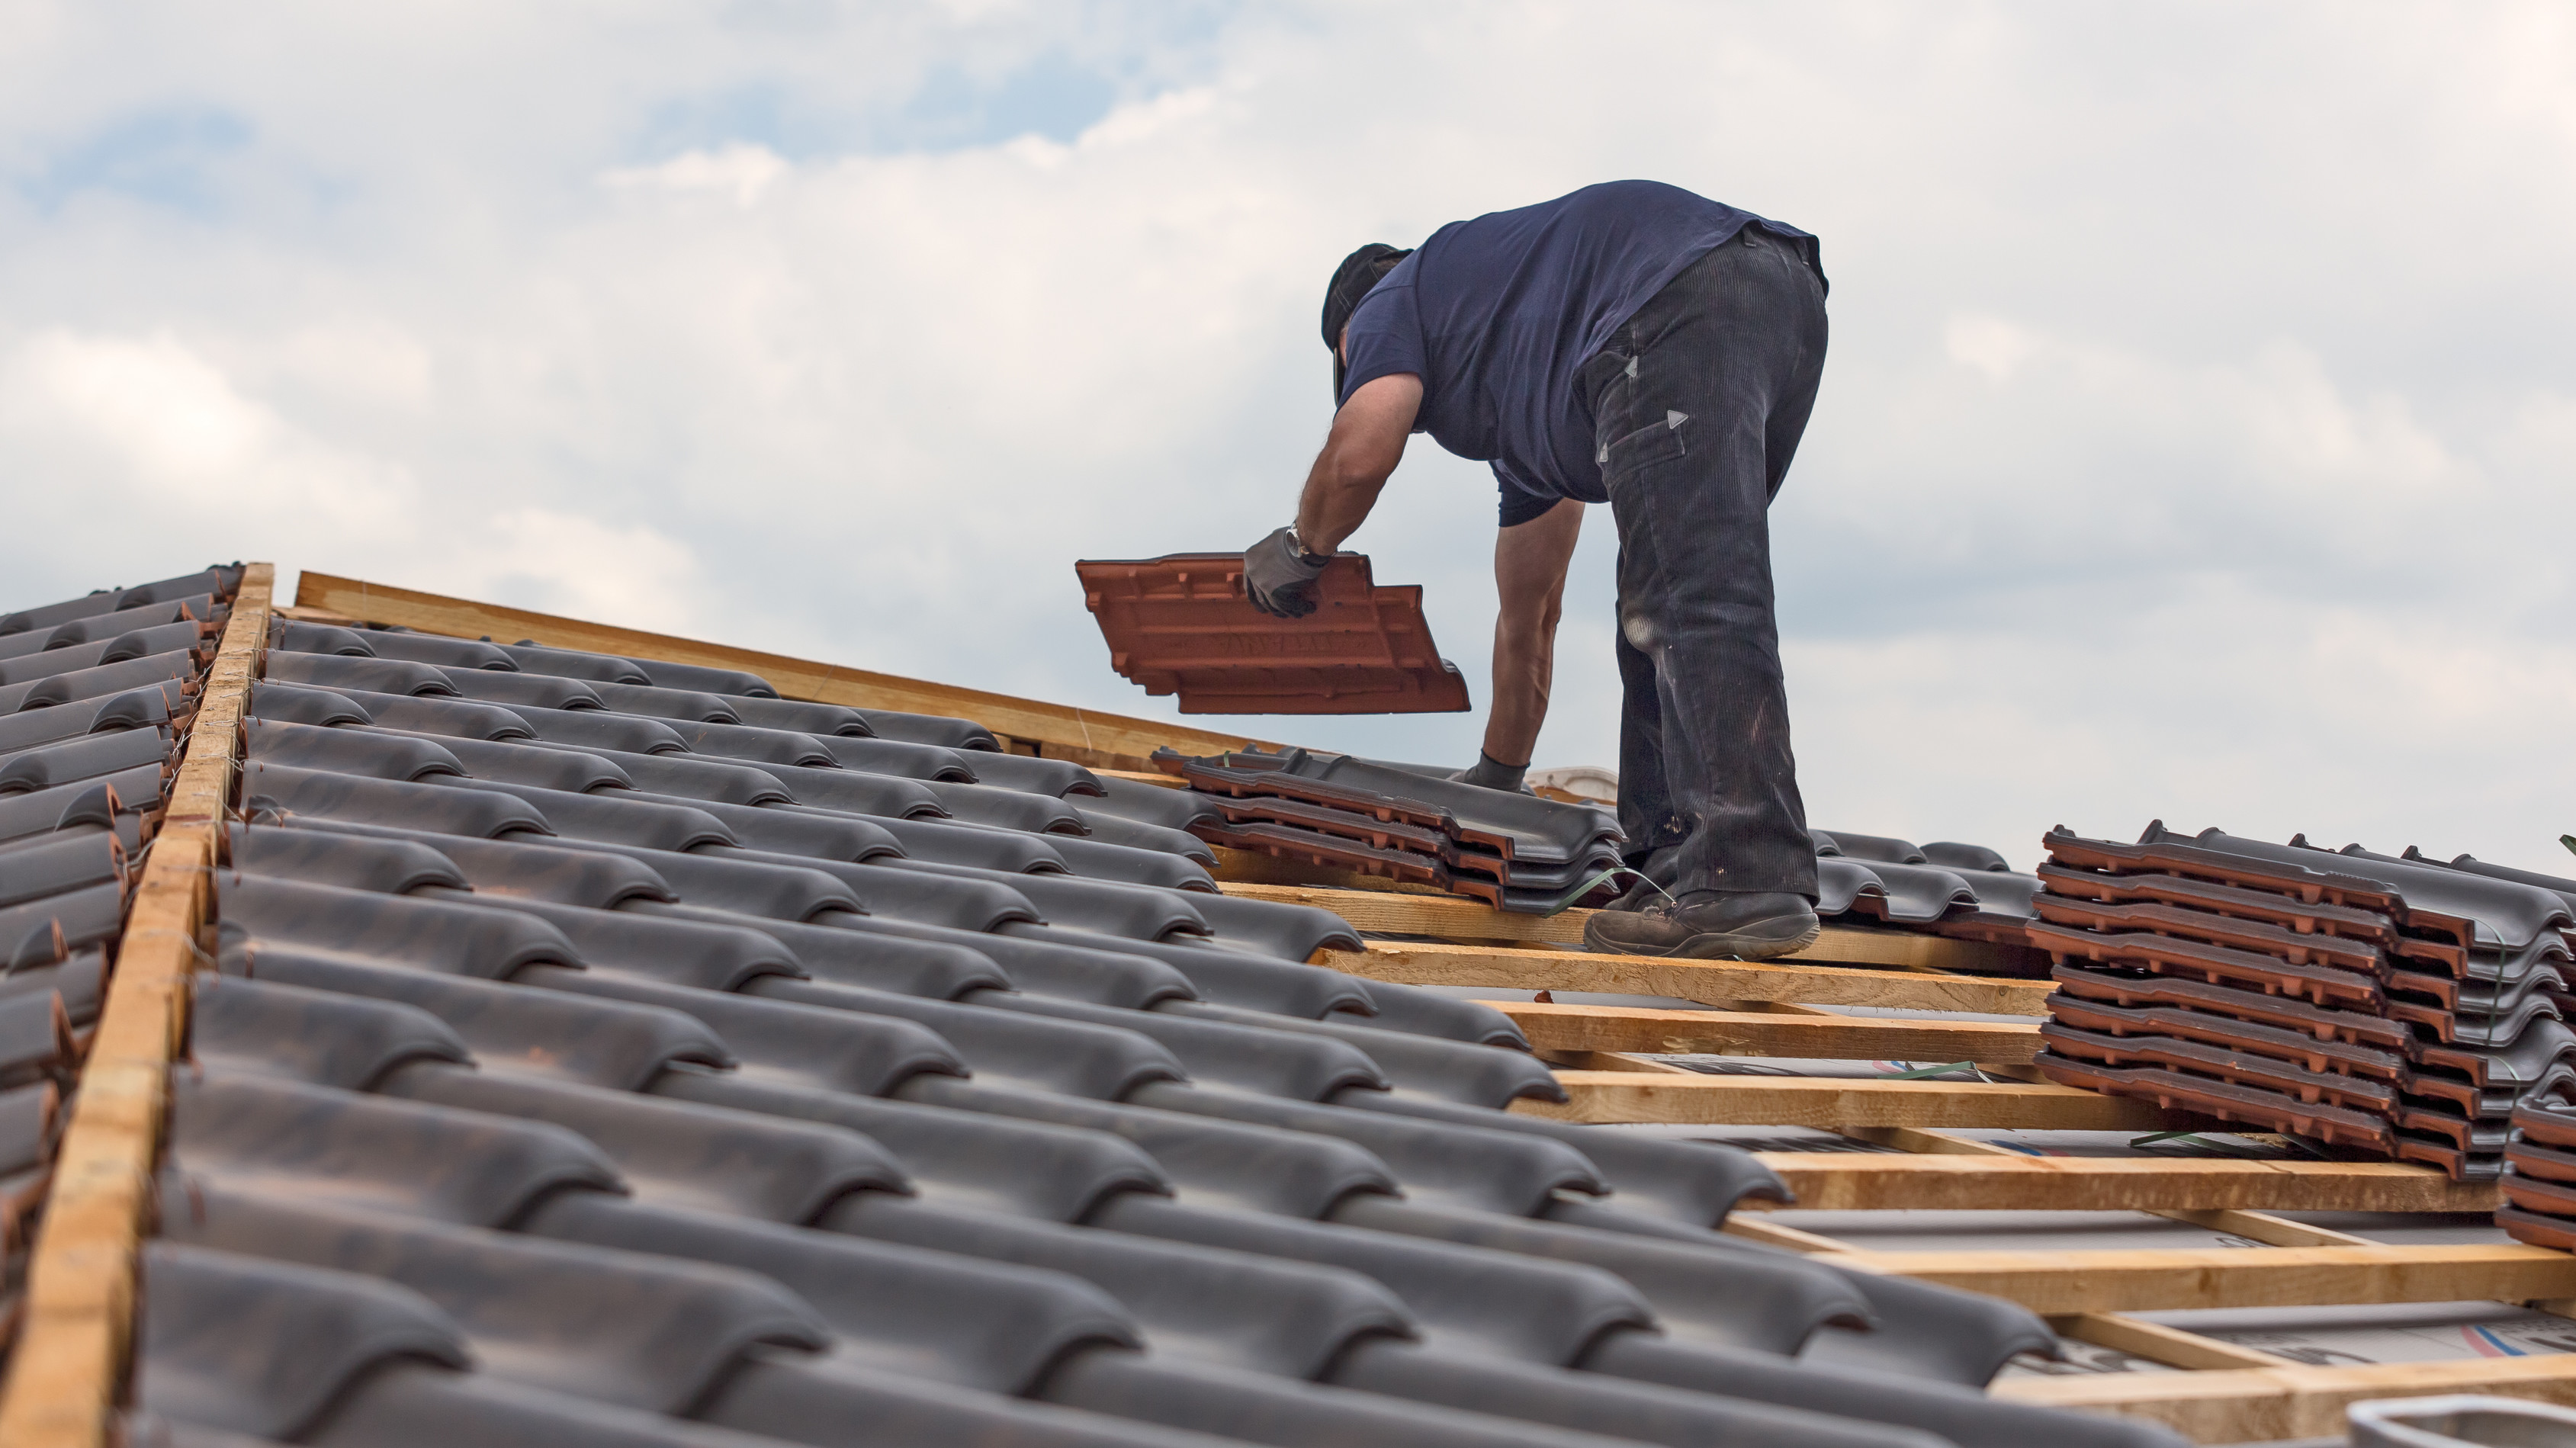 Roofer covers the roof